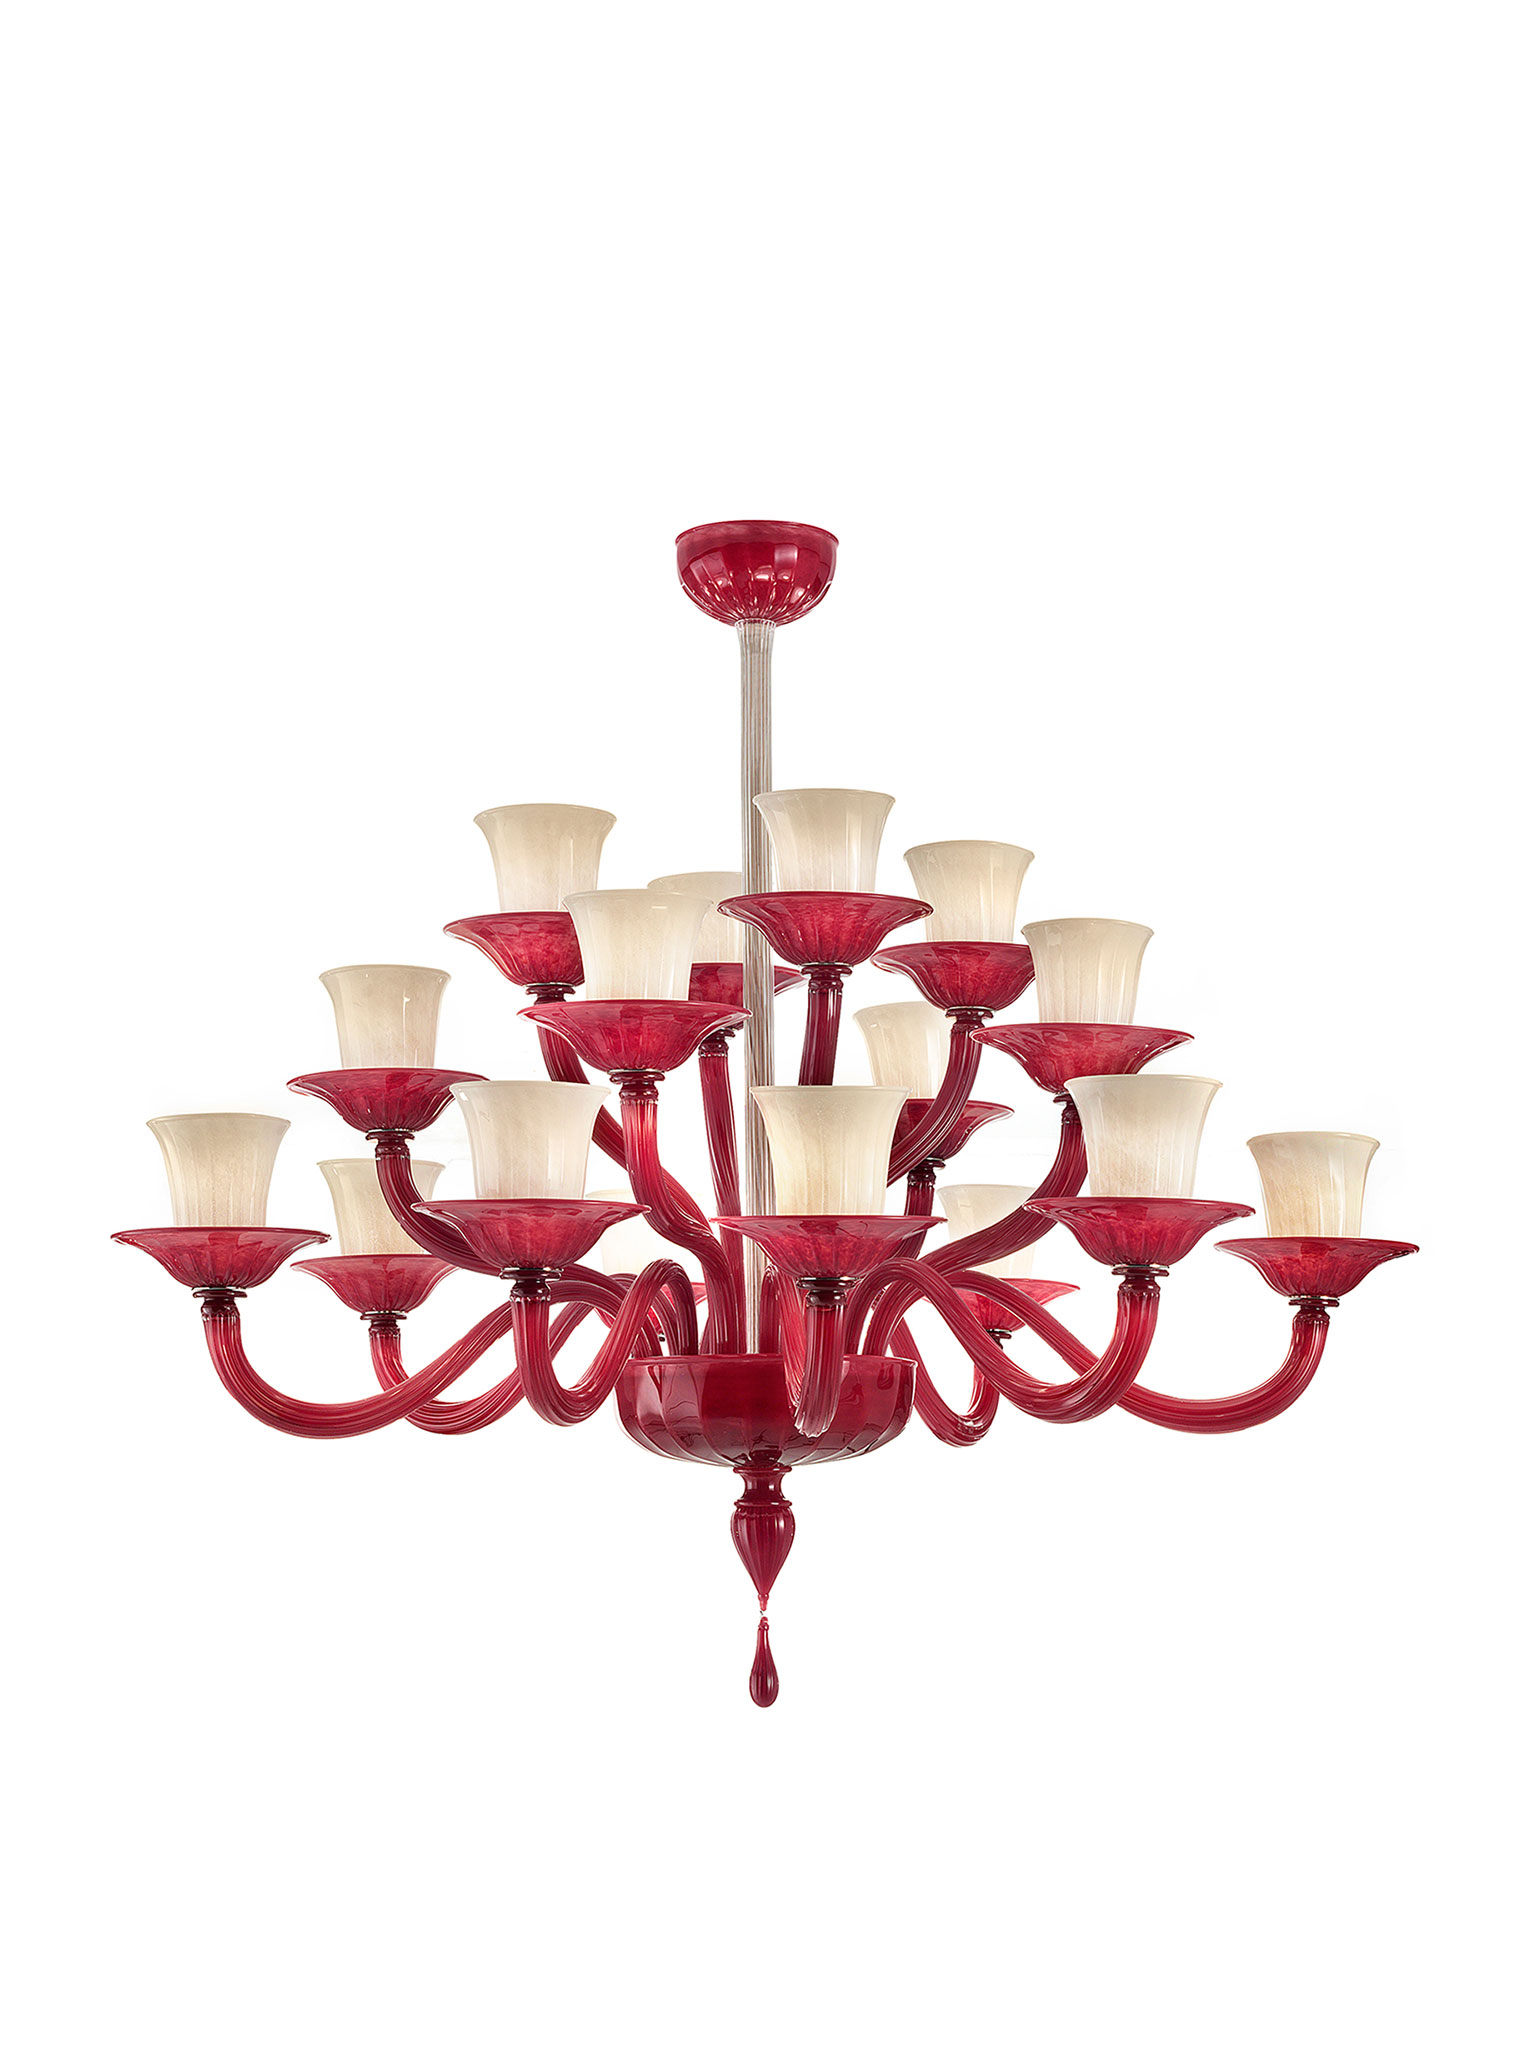 arm product chandelier garbo fortuny